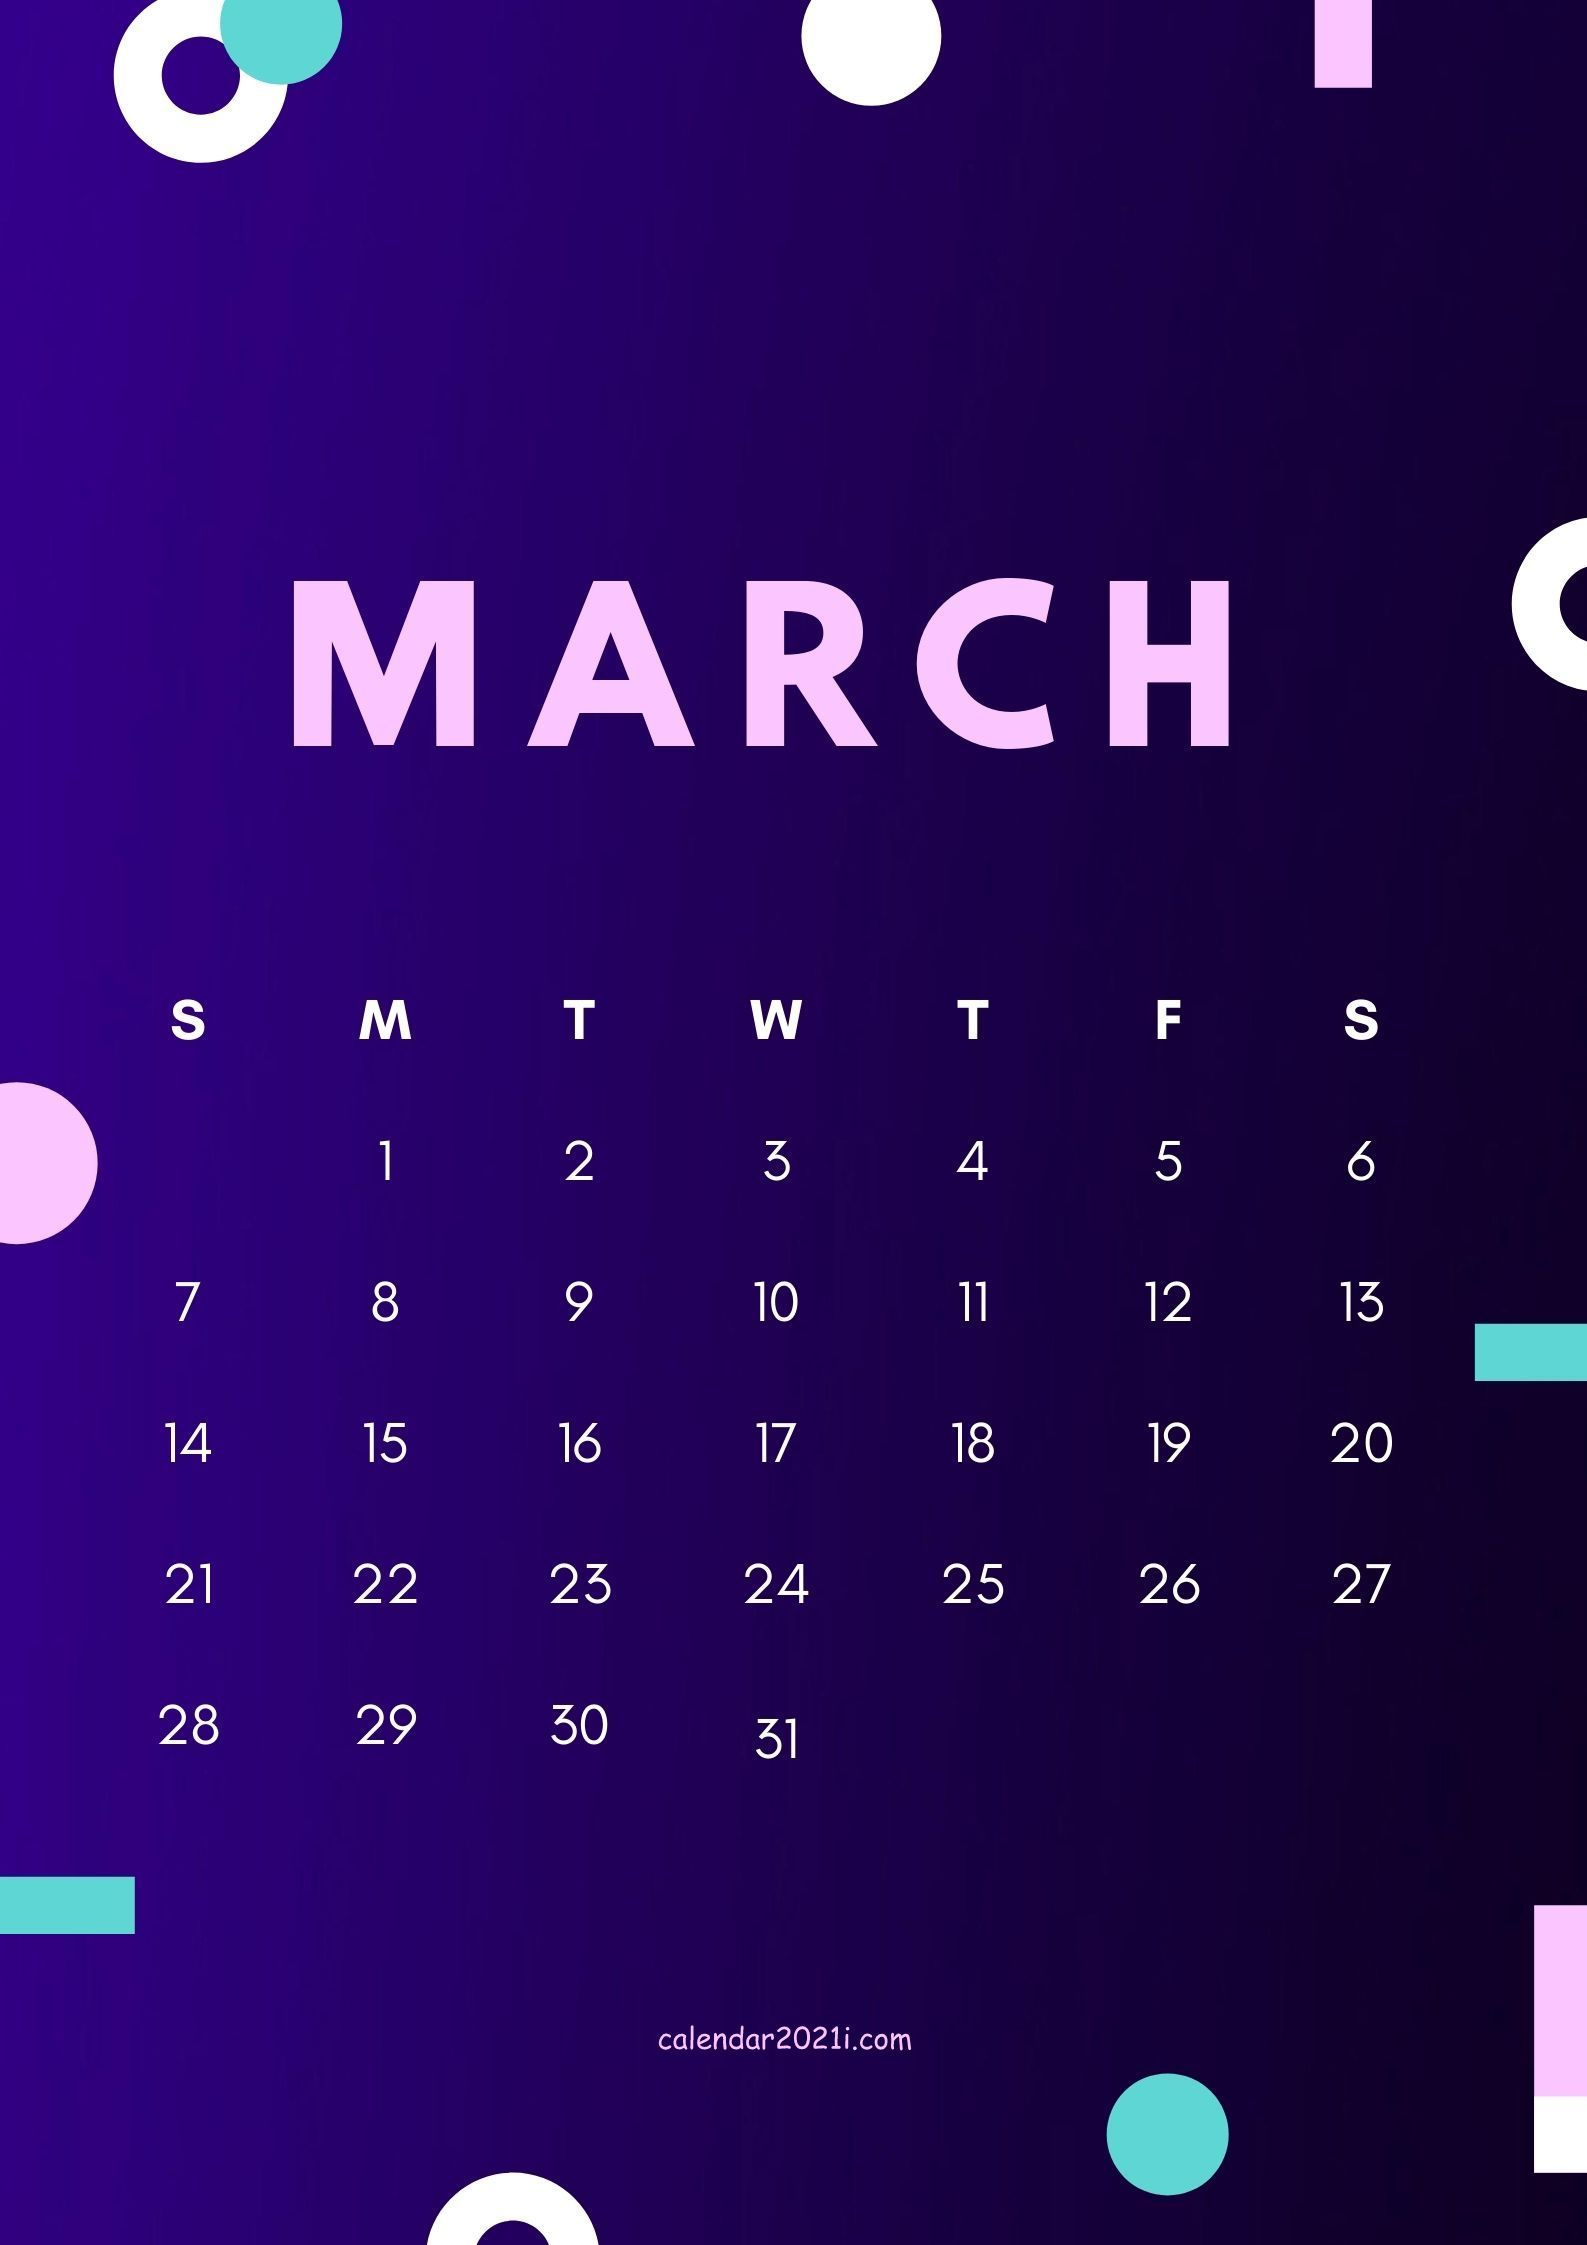 Cute March 2021 calendar design theme layout free download